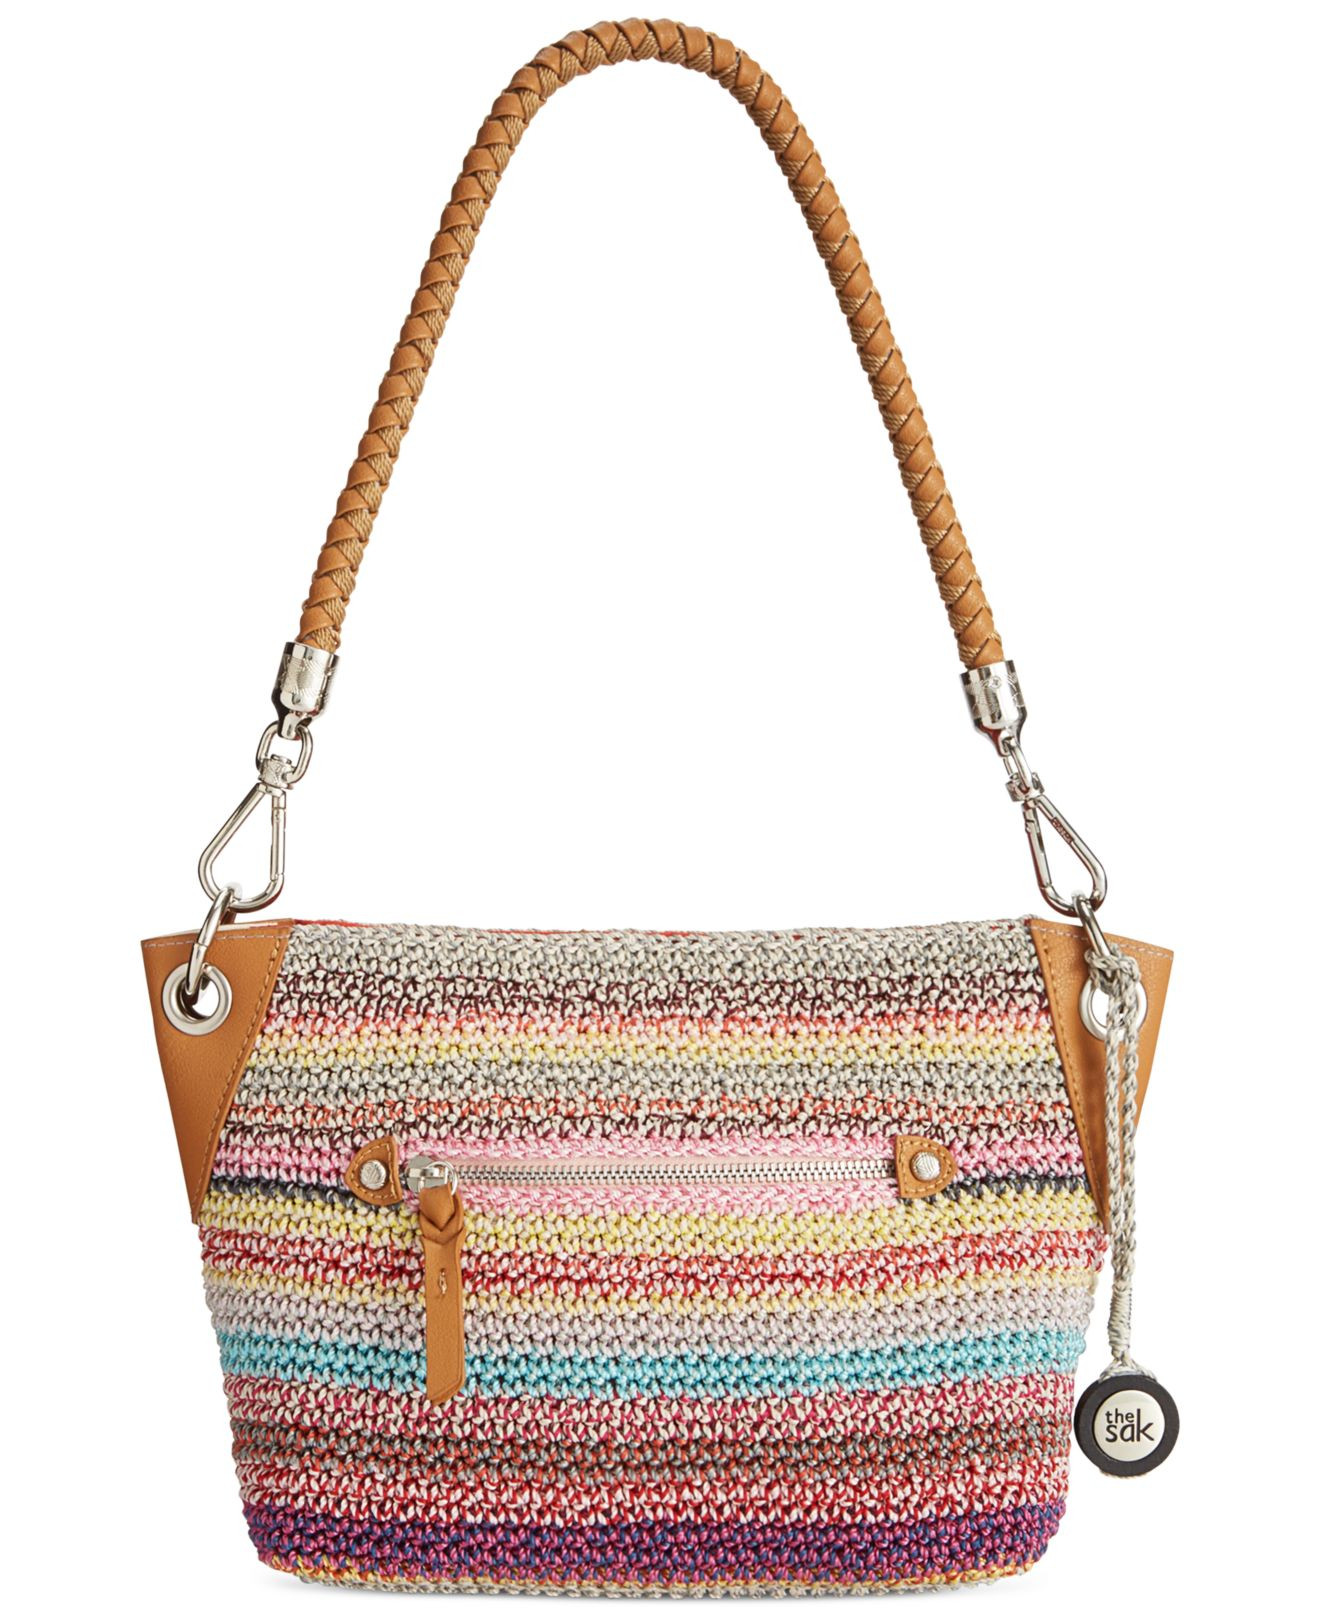 The Sak Crochet Elegant the Sak Portola Crochet Demi Bag In Multicolor Festi Of The Sak Crochet Awesome the Sak Black Crochet Cross Body Shoulder Bag Purse Handbag